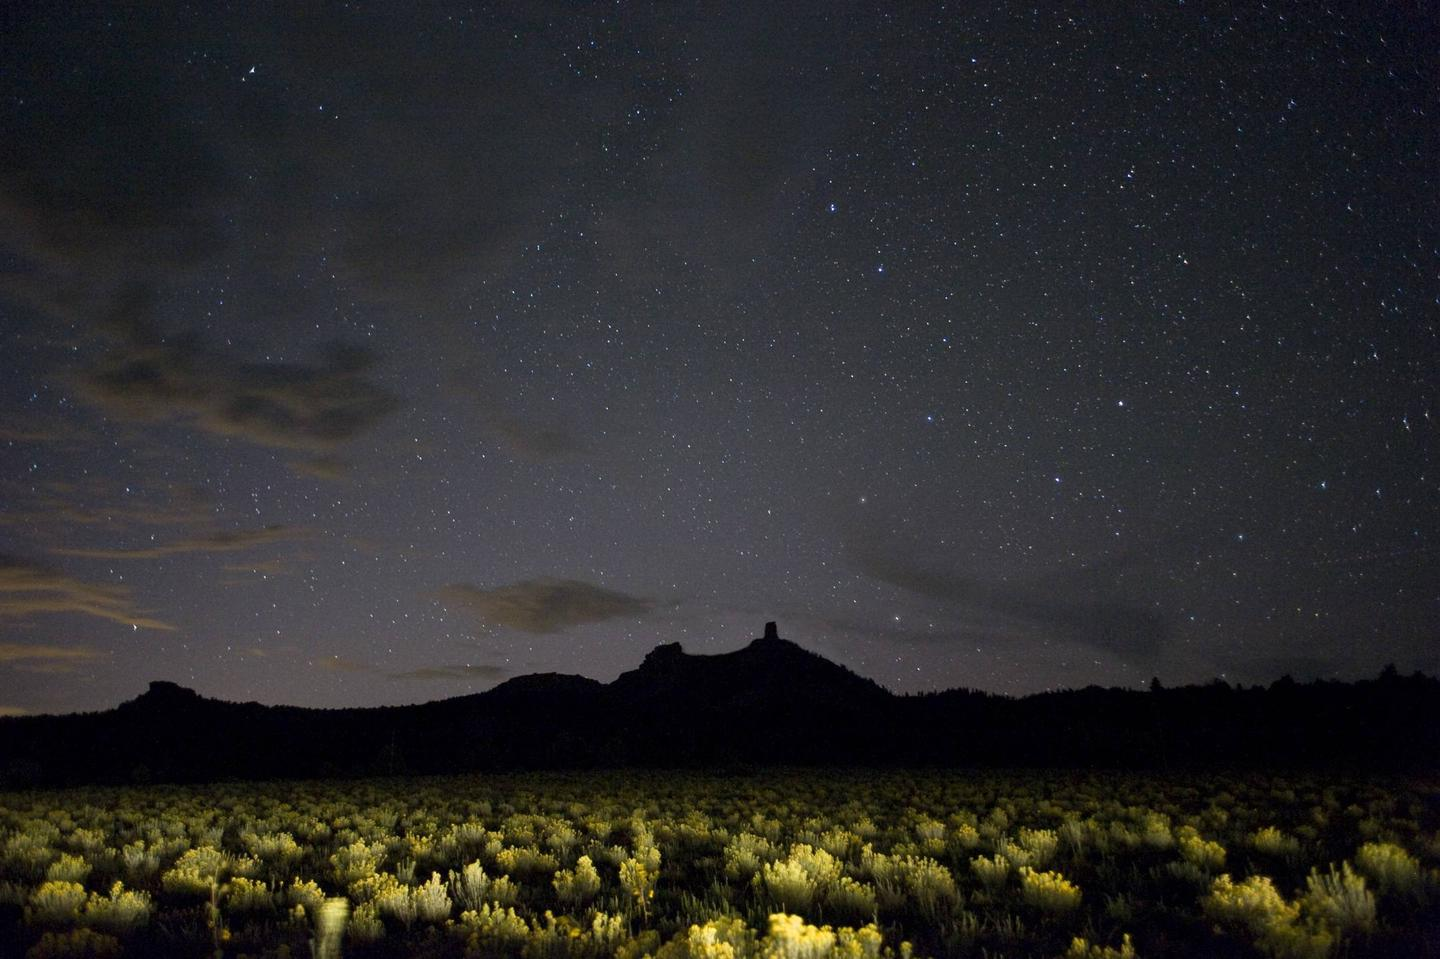 Chimney Rock National Monument is the highest in elevation of all the Chacoan sites, at about 7,000 feet above sea level.Learn about how the ancient Puebloans used the night sky and get a closer look at the stars and galaxies through telescopes!